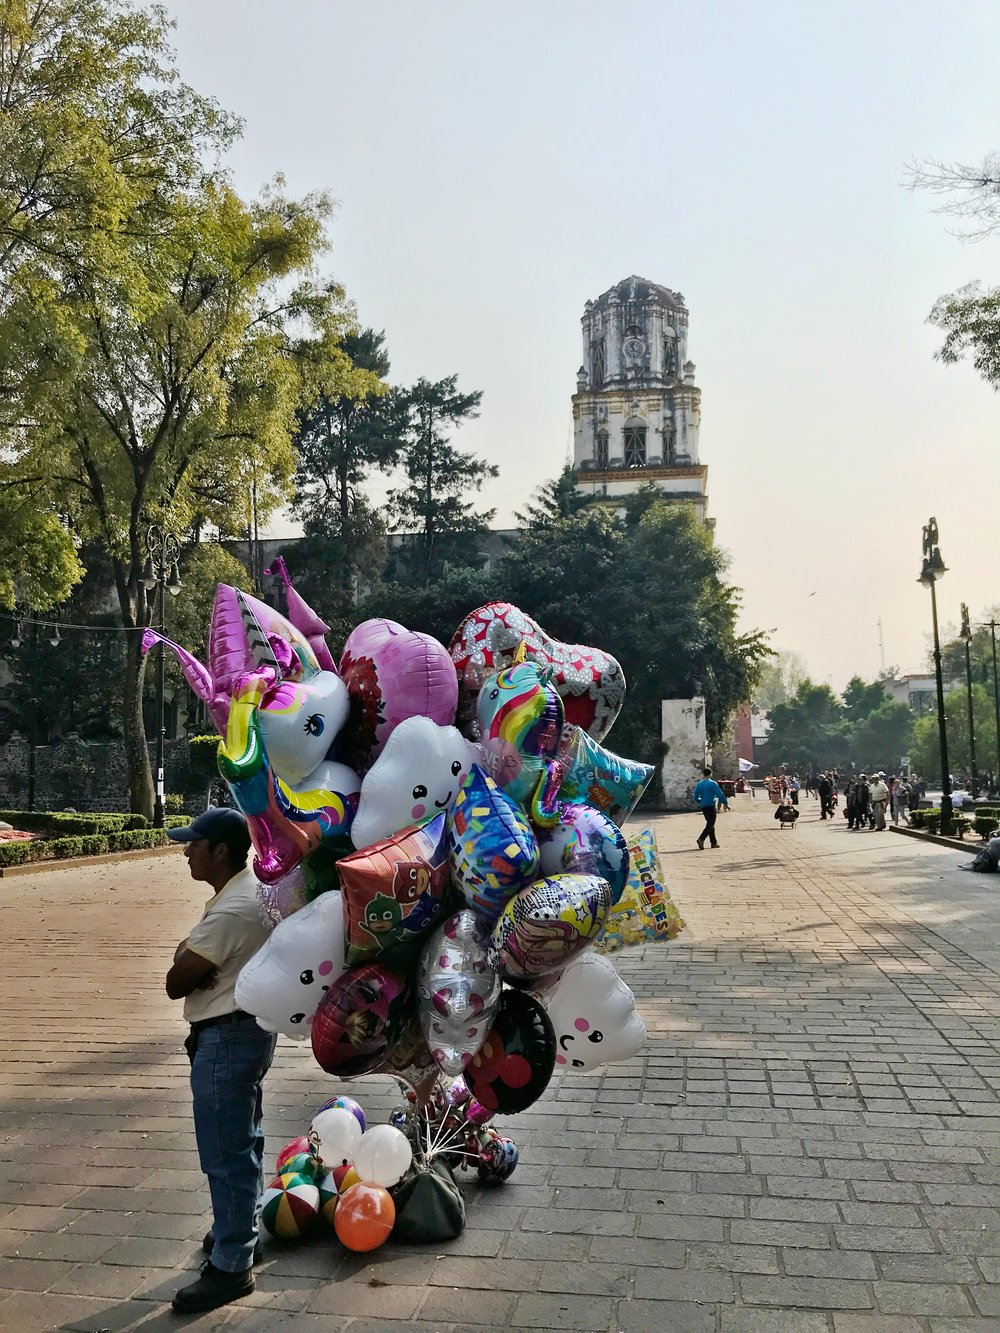 You'll see balloon vendors all over CDMX